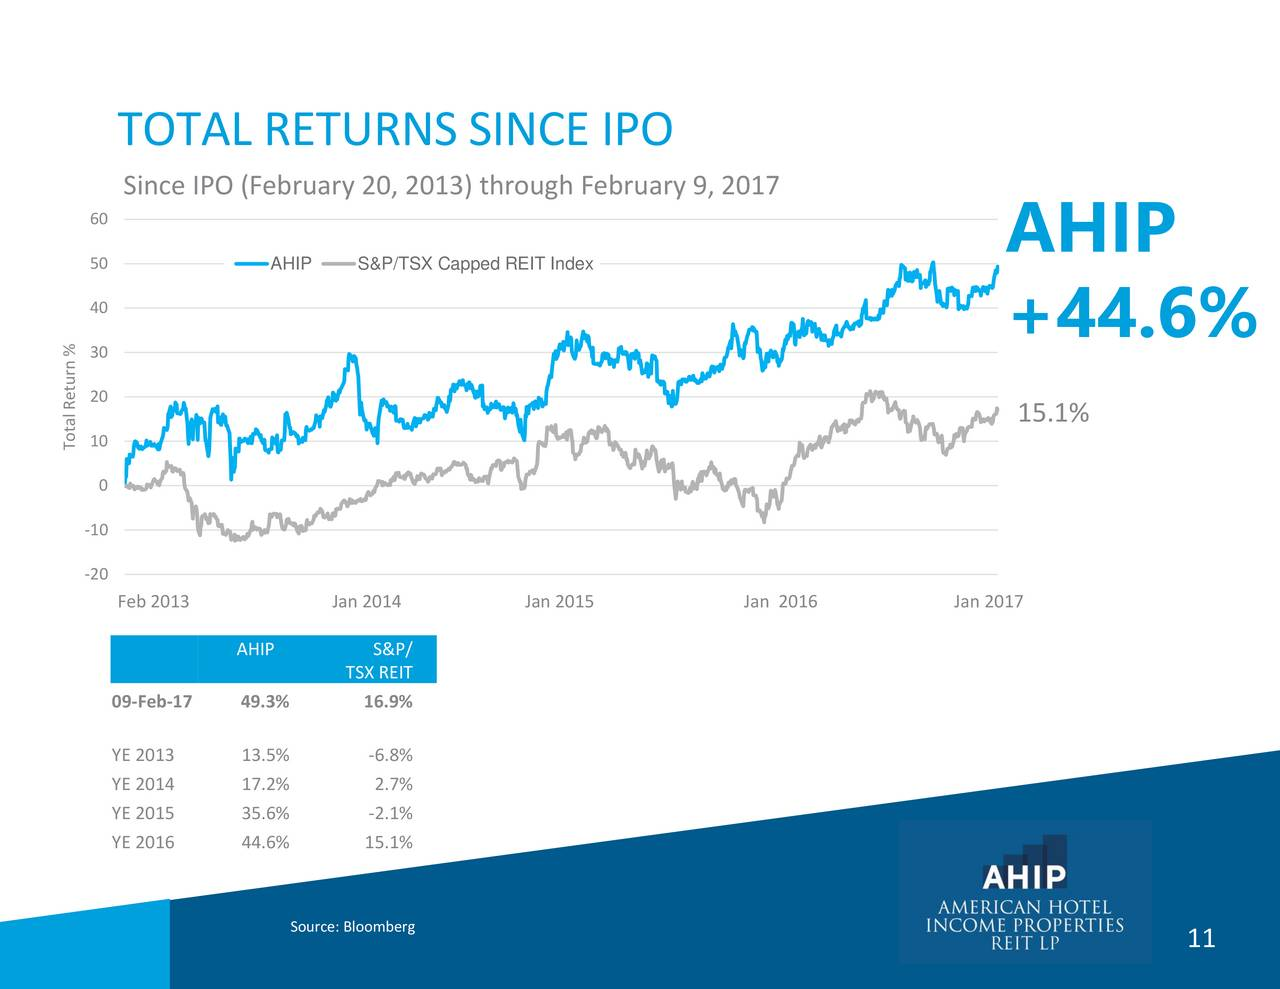 American hotel income properties reit ipo